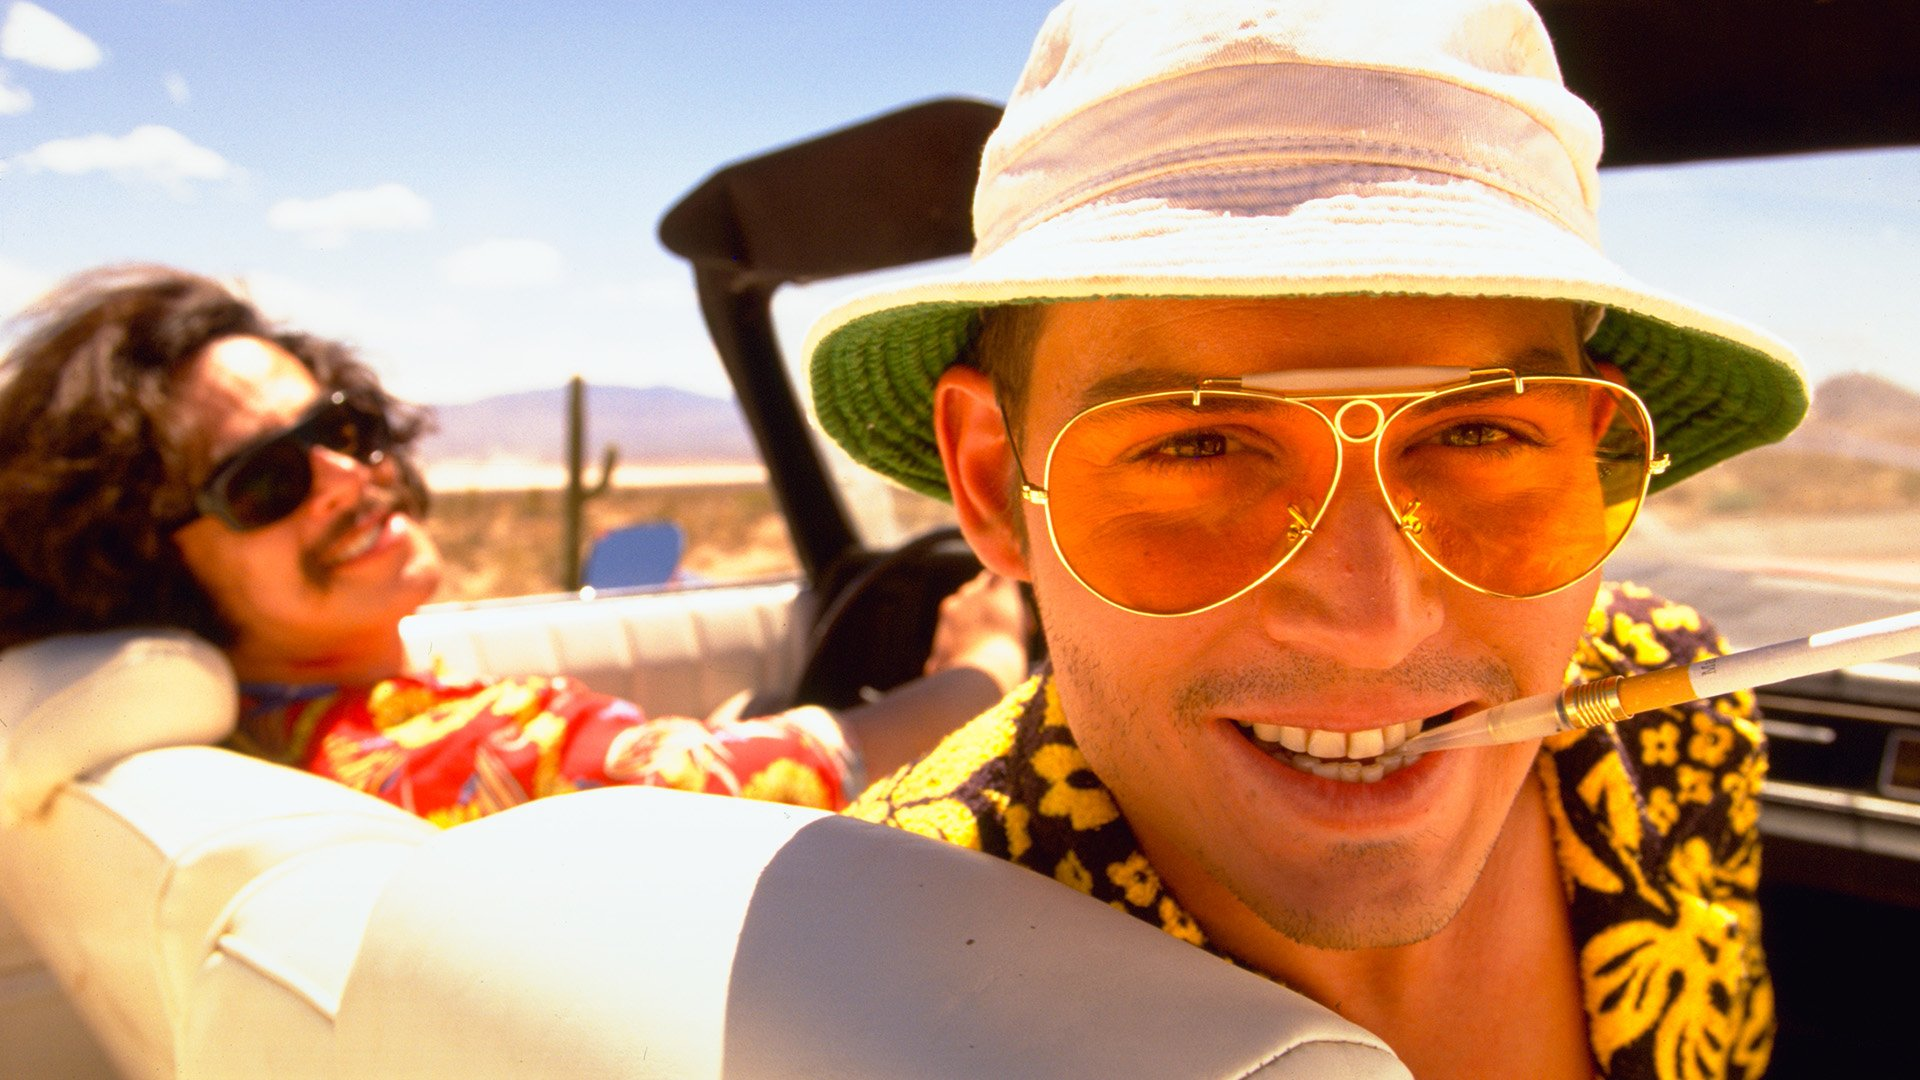 12 Fear And Loathing In Las Vegas Hd Wallpapers Background